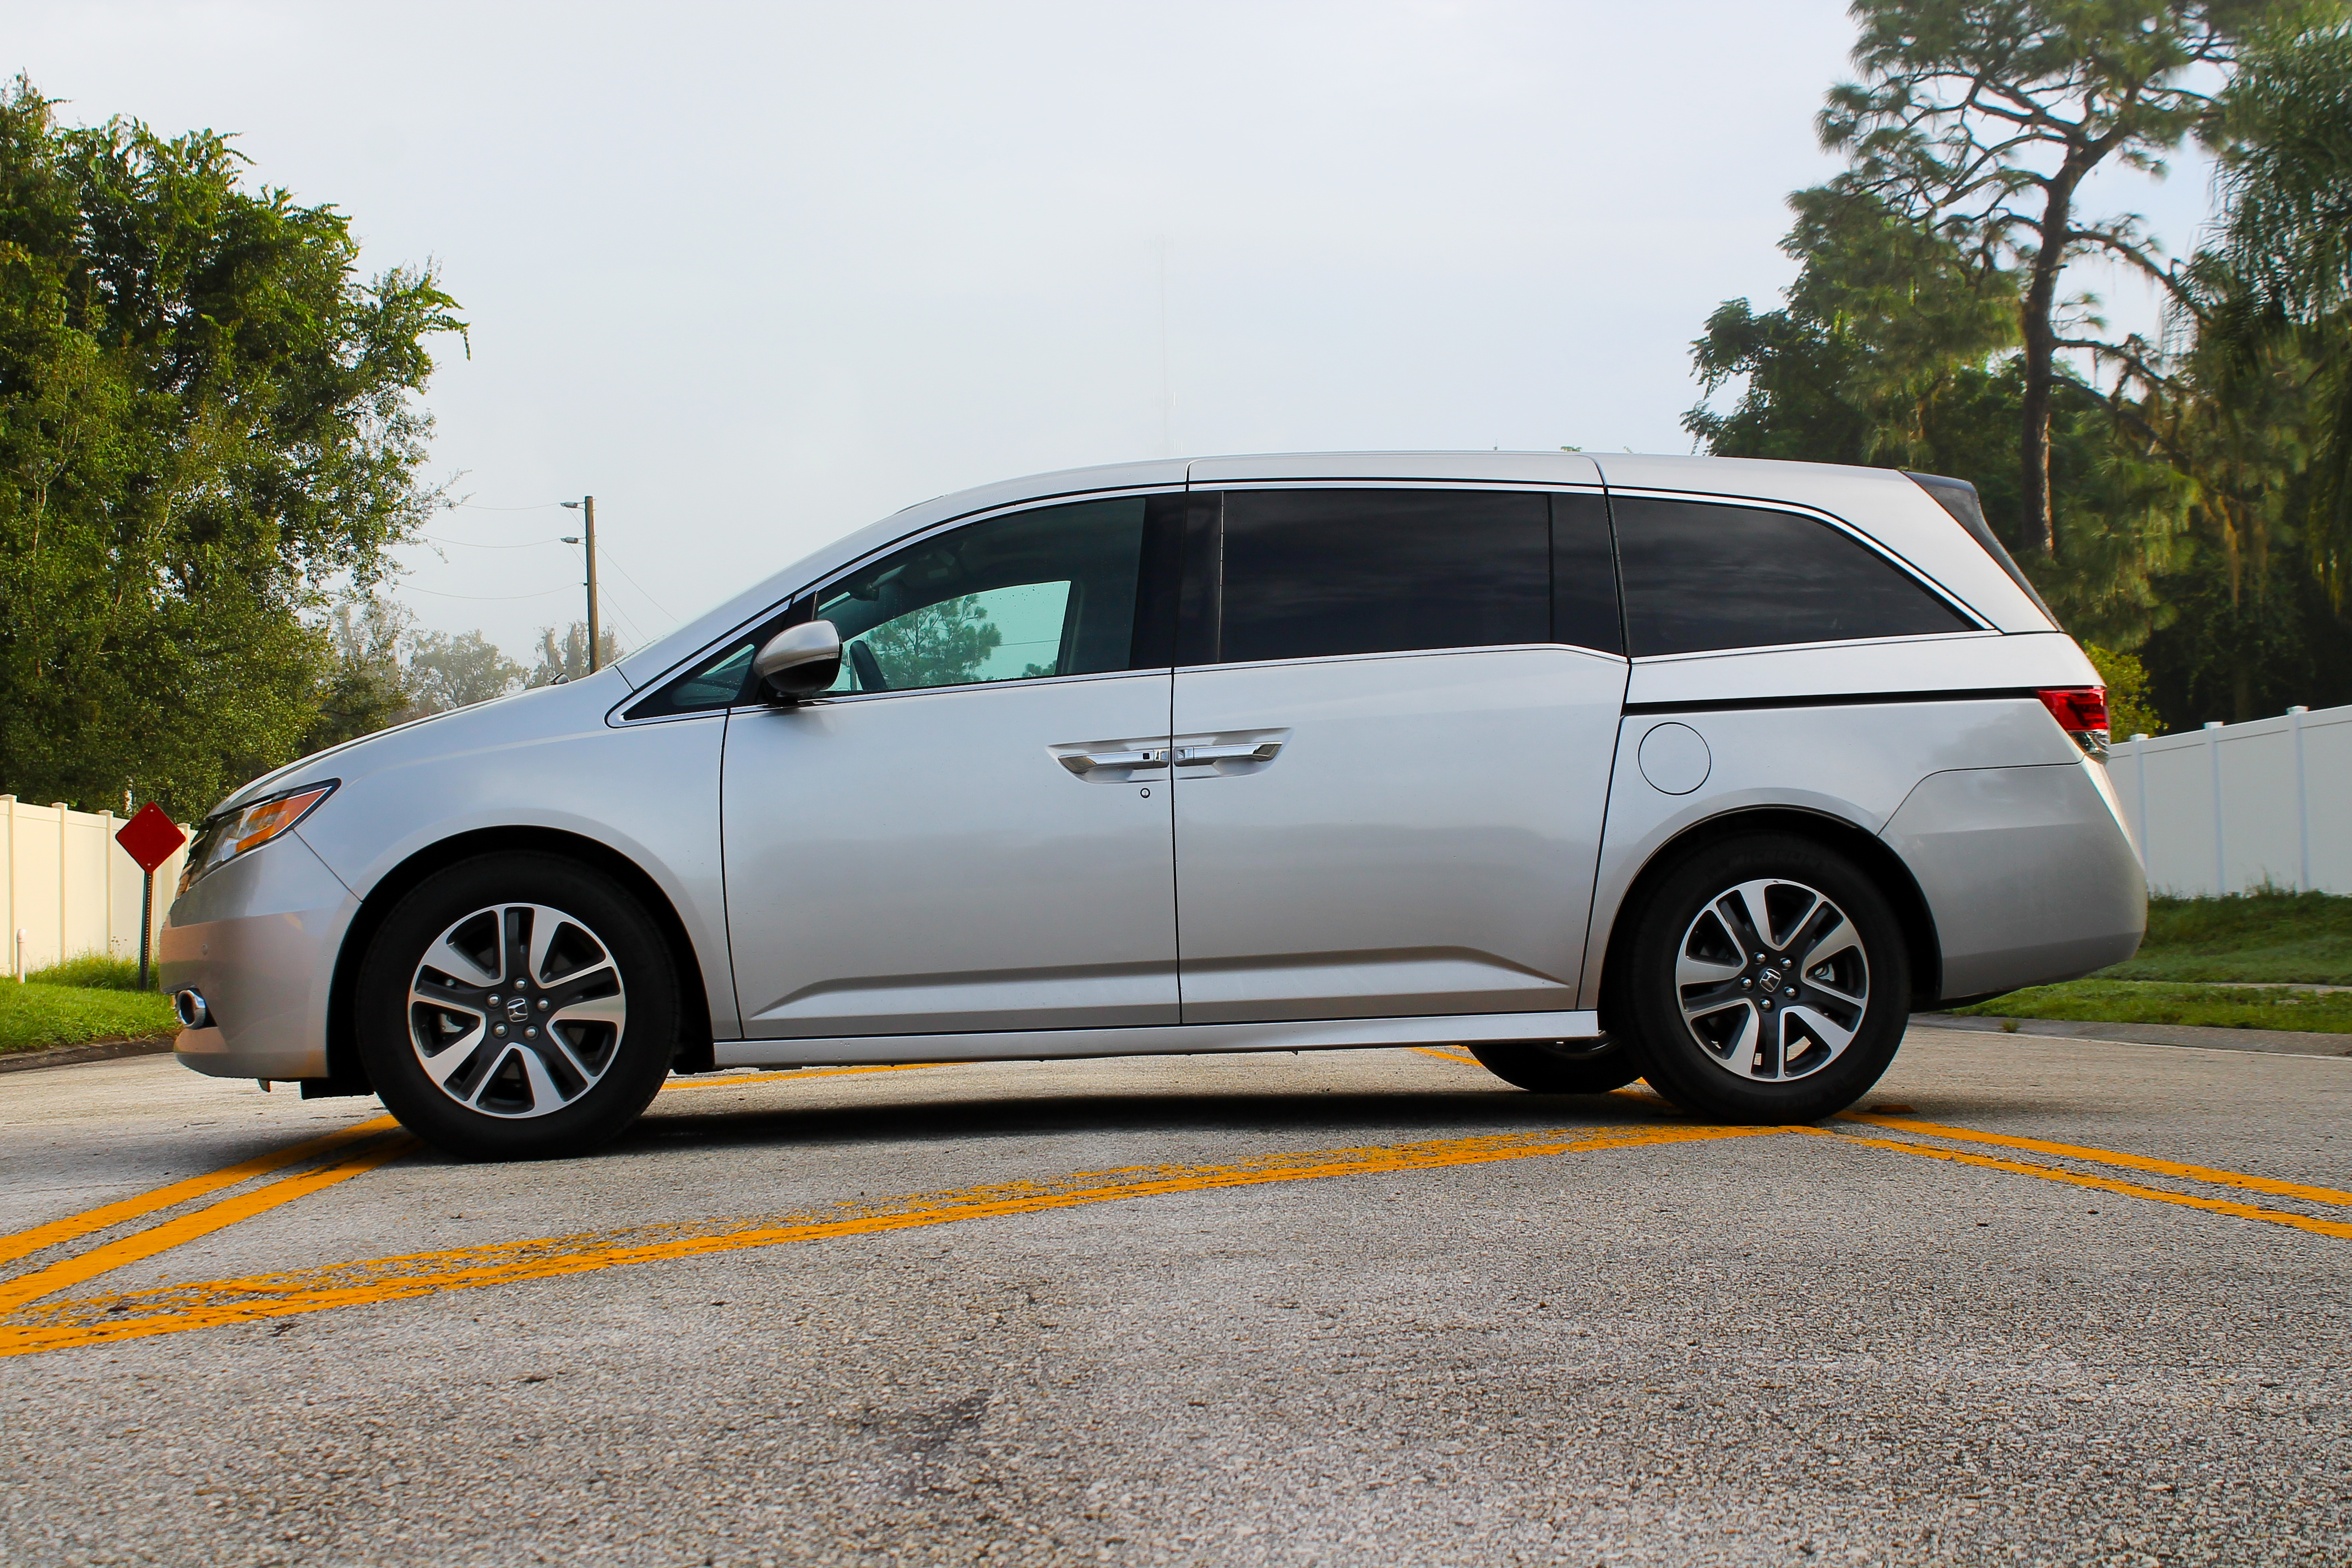 2015 honda odyssey touring elite driven review top speed. Black Bedroom Furniture Sets. Home Design Ideas